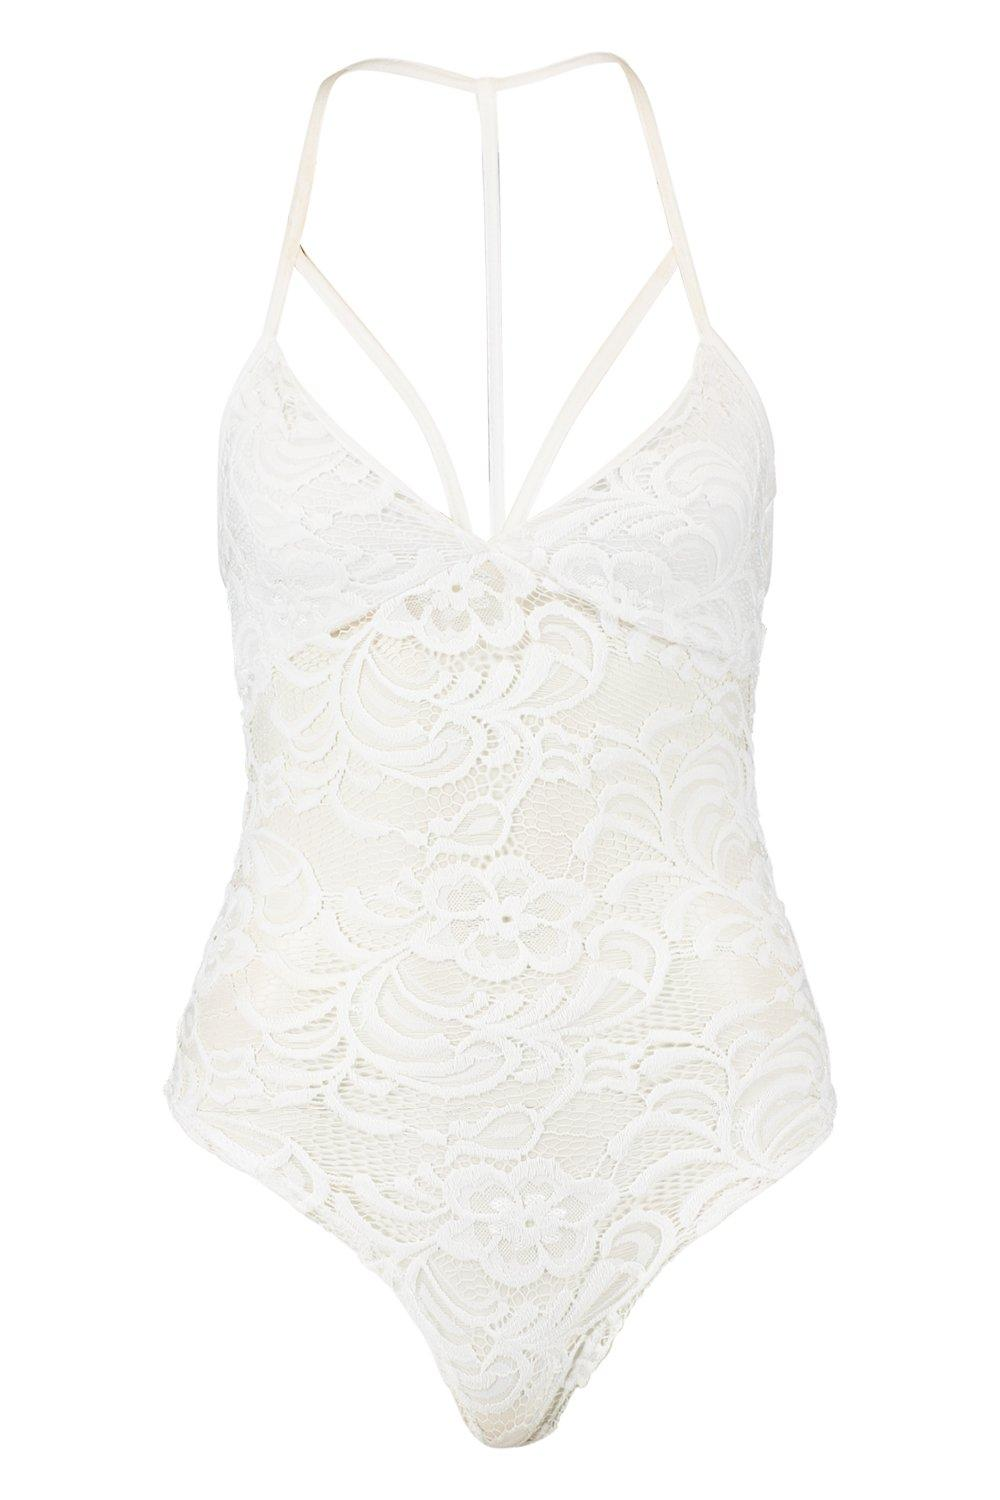 Lace Strappy white Lace Bodysuit Strappy aSPaqrz